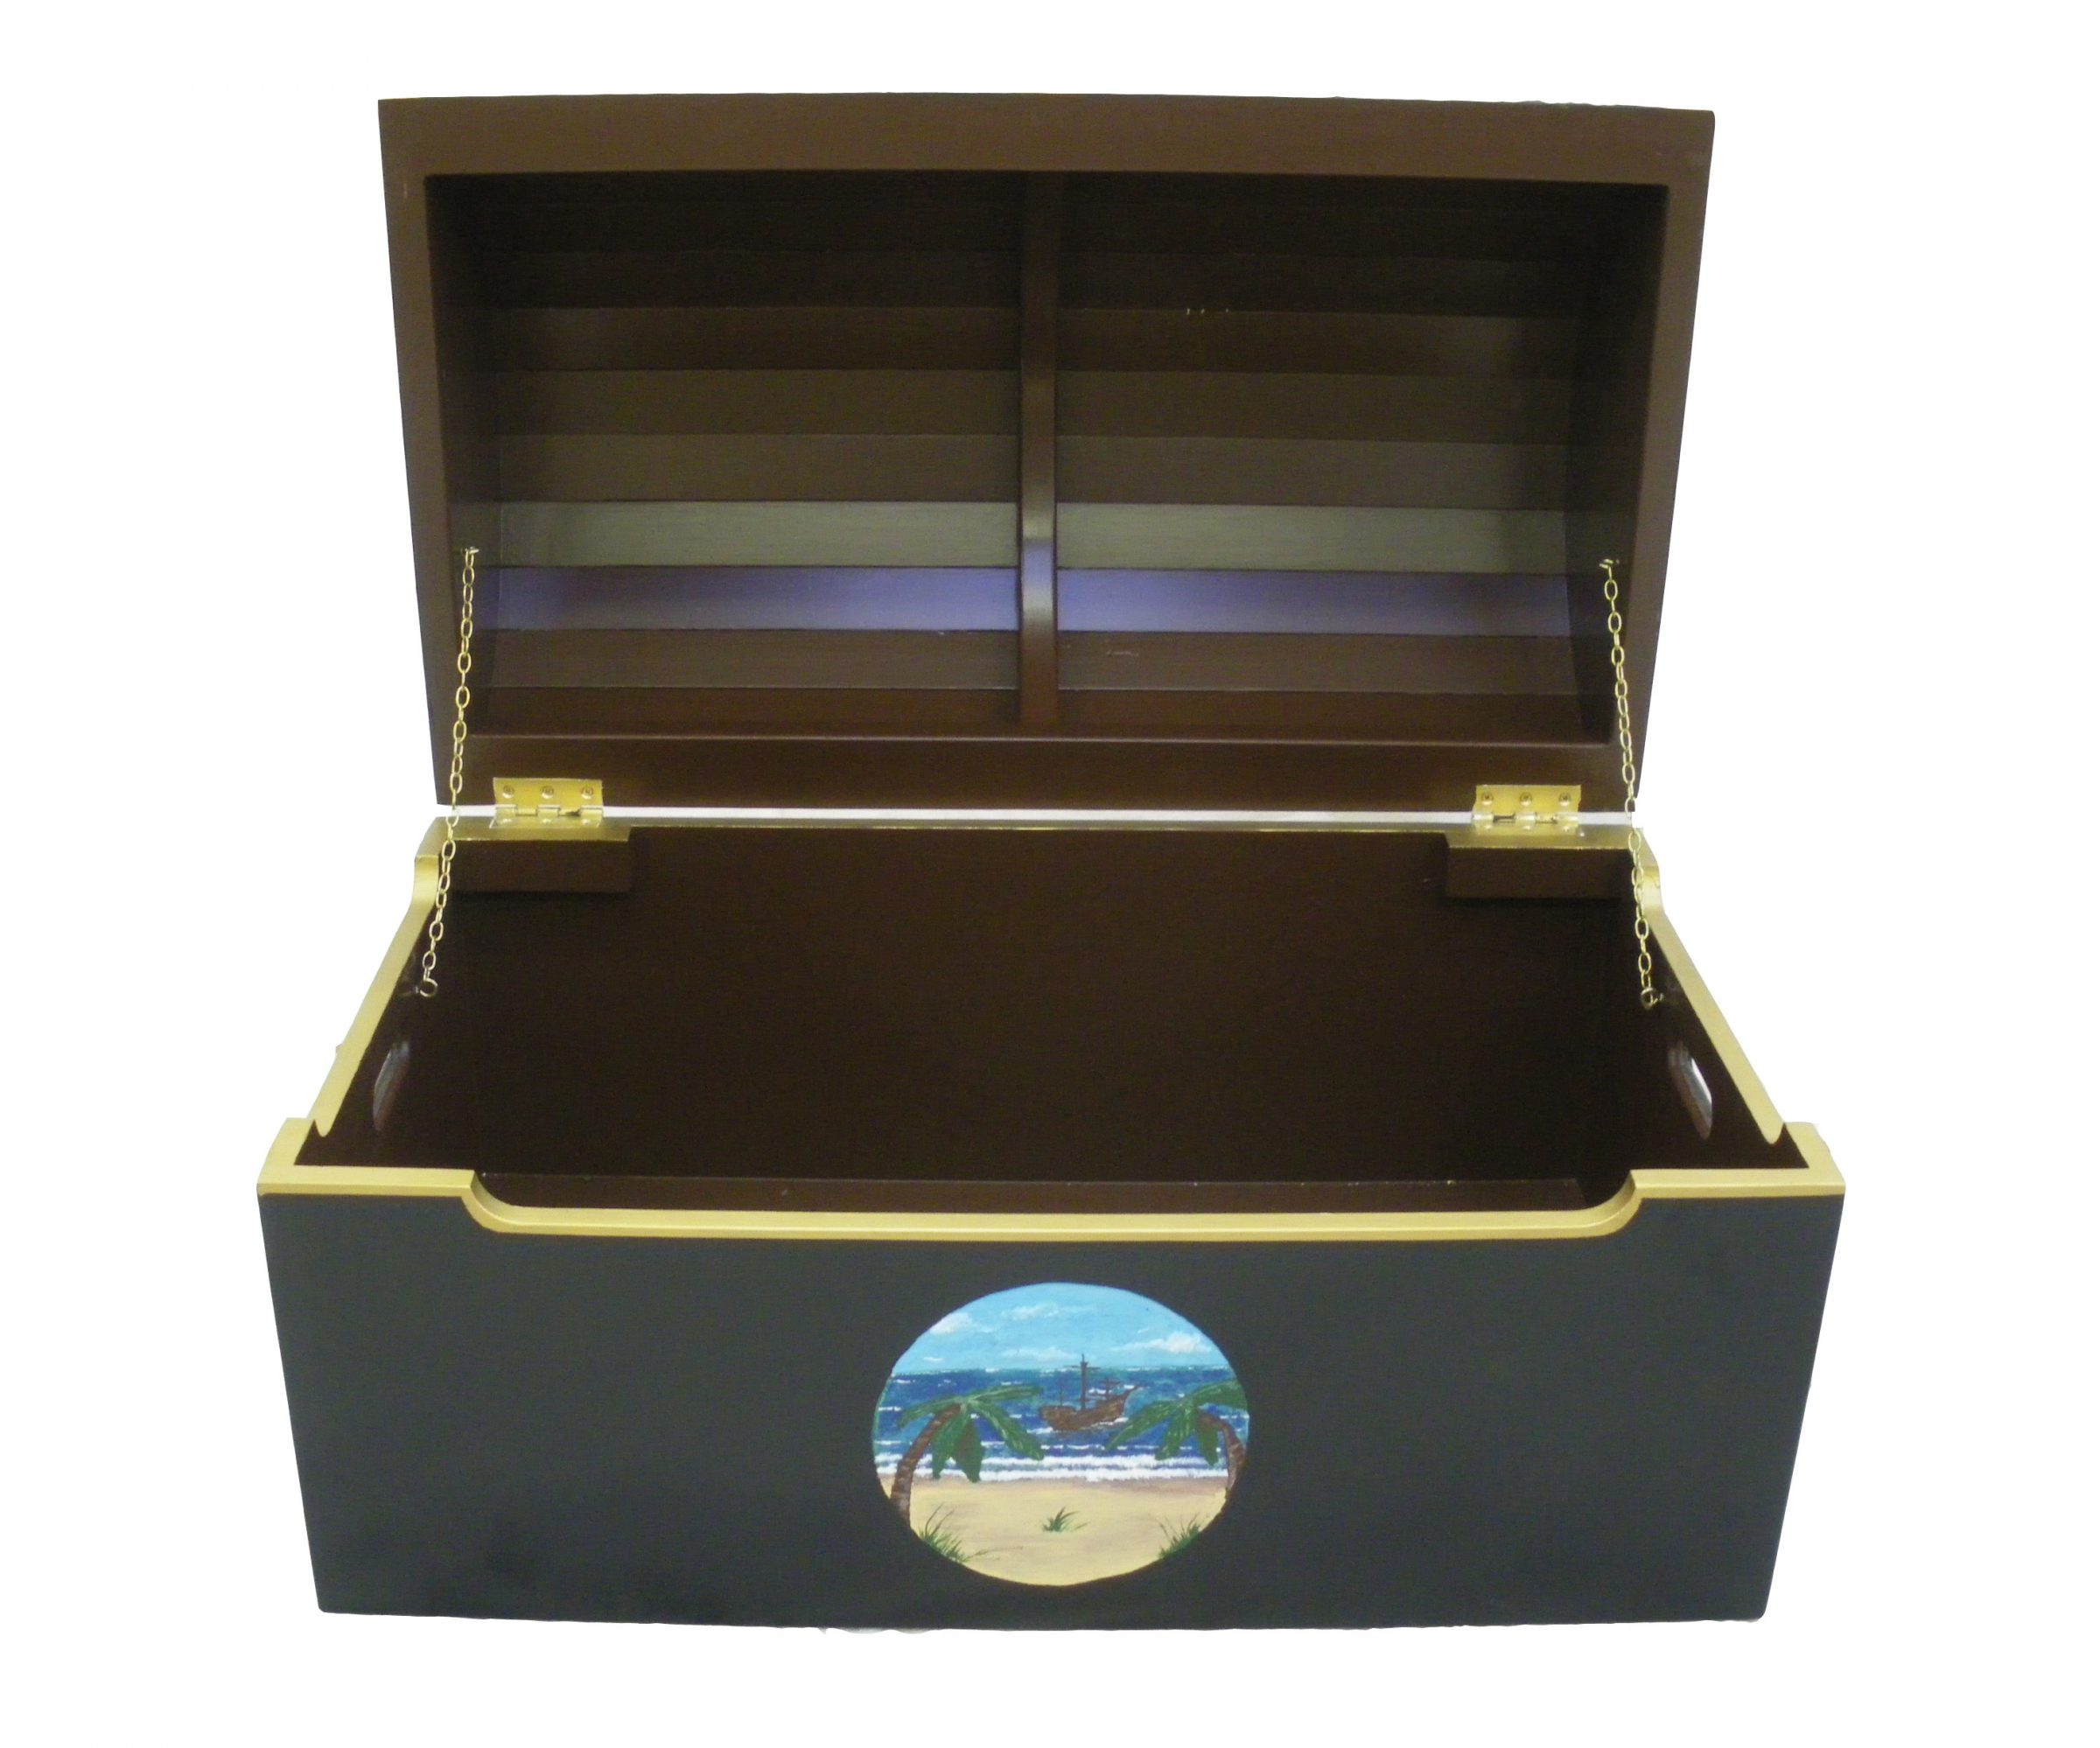 Pirate Themed Bedroom Furniture Themed Toy Boxes Chests Of Drawers Flights Of Fantasy